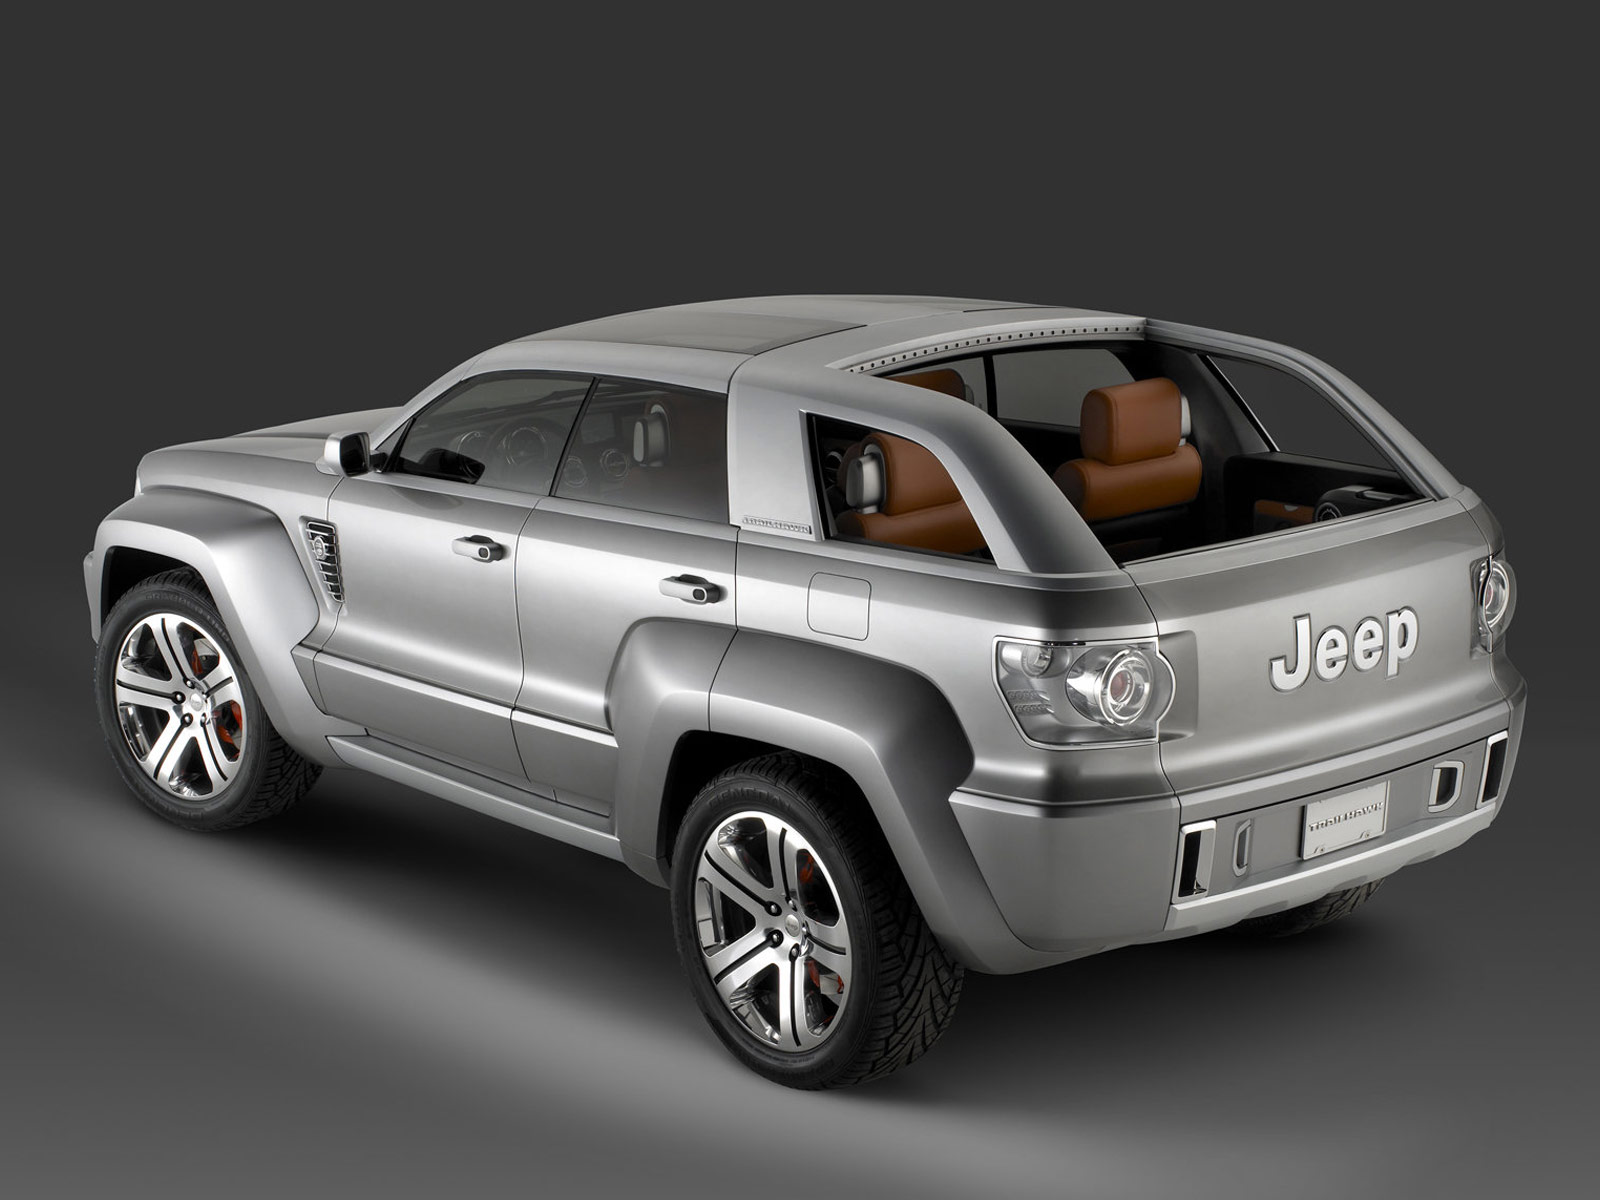 2007 Jeep Trailhawk Concept Download Gambar Mobil